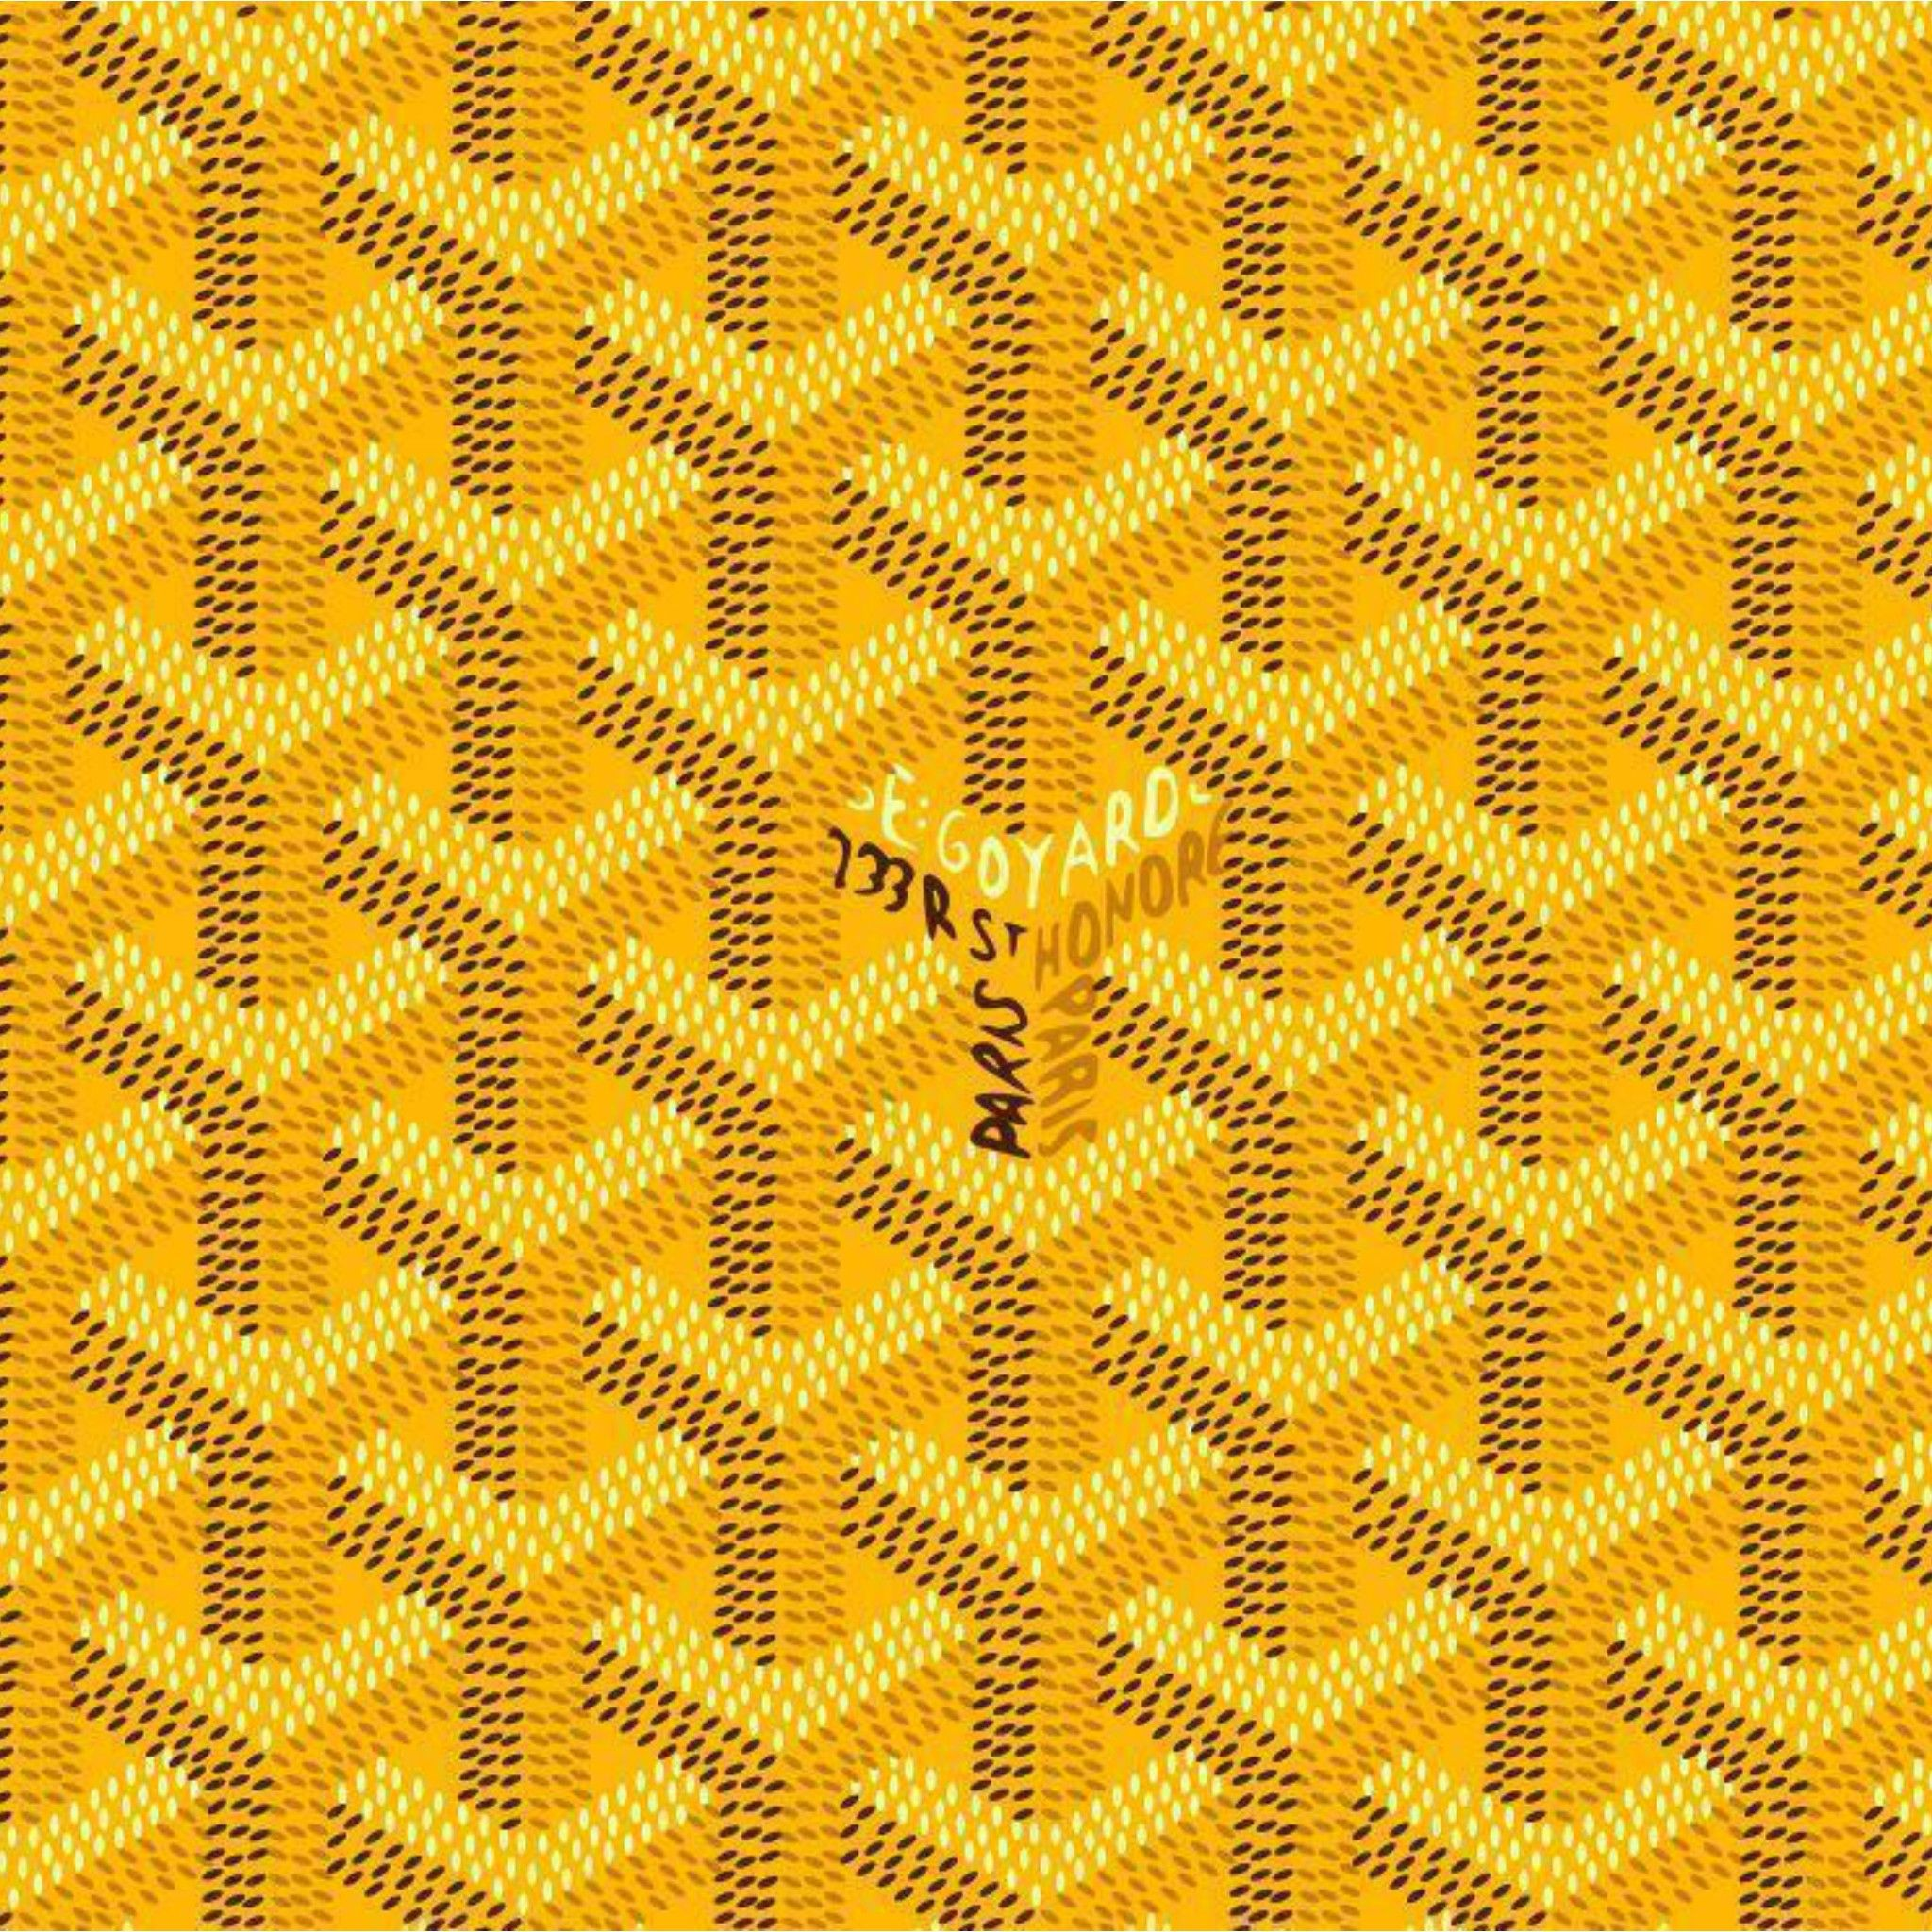 Yellow Goyard Pattern Tap To See More Goyard Wallpapers Mobile9 Goyard Pattern Yellow Fabric Texture Yellow Wallpaper